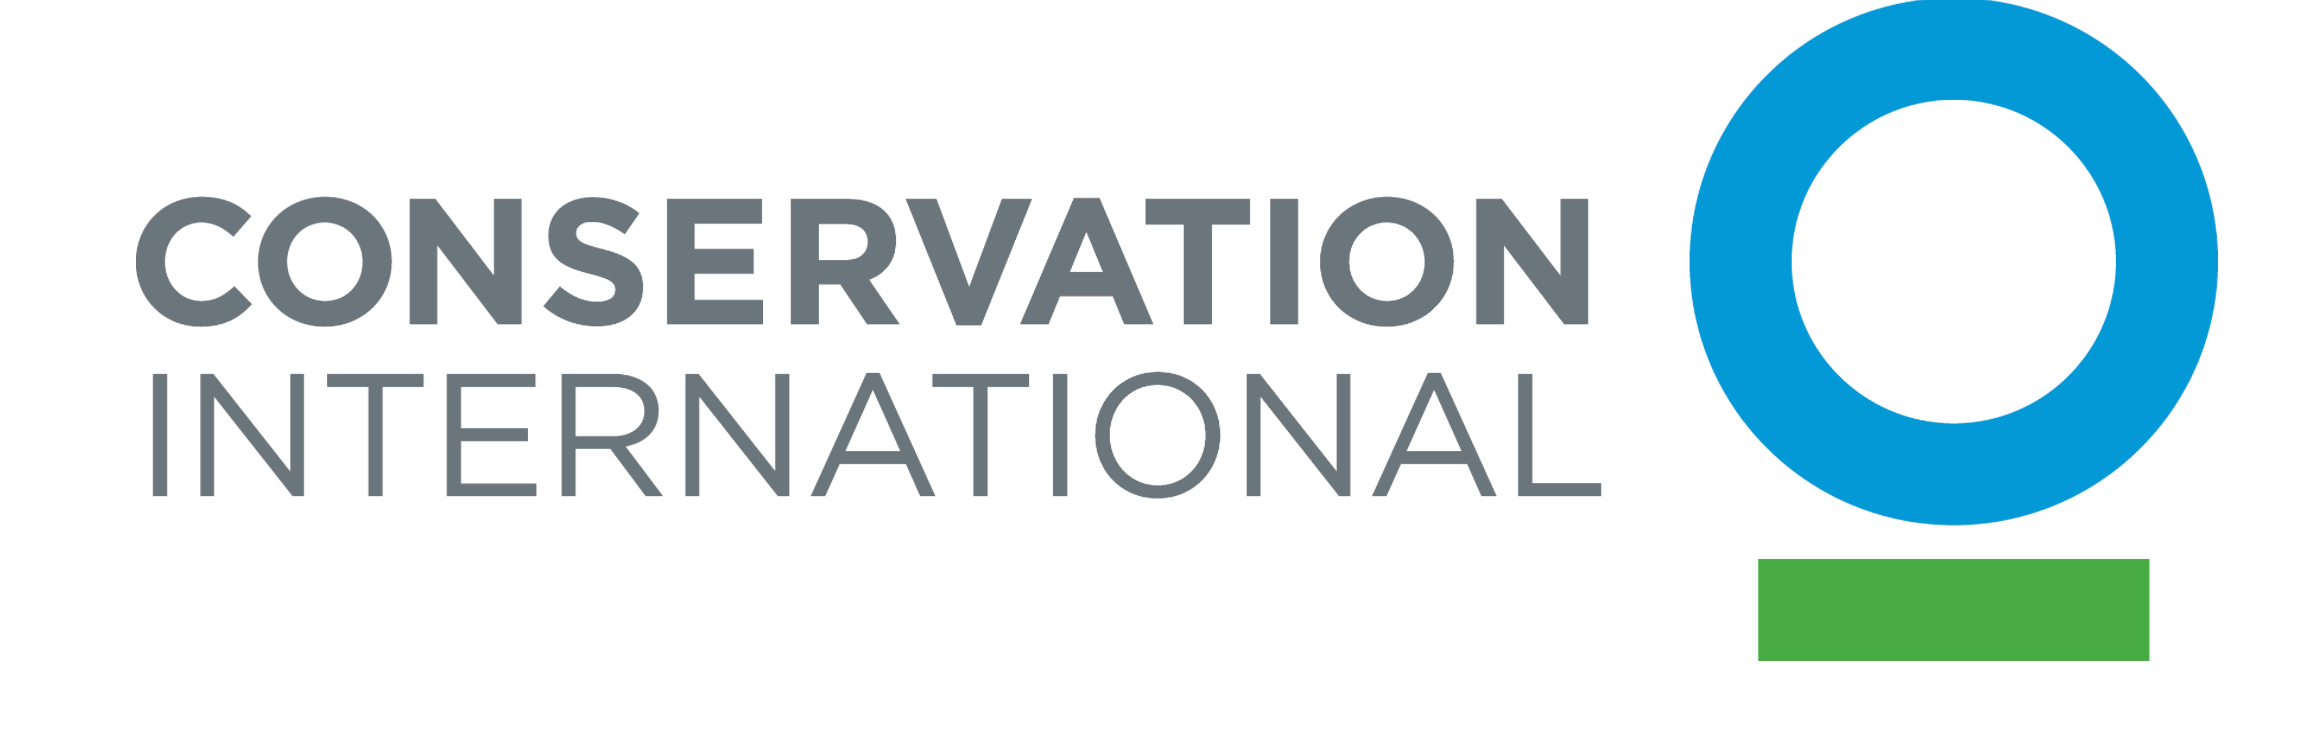 Career opportunities with Conservation International in Peru ...